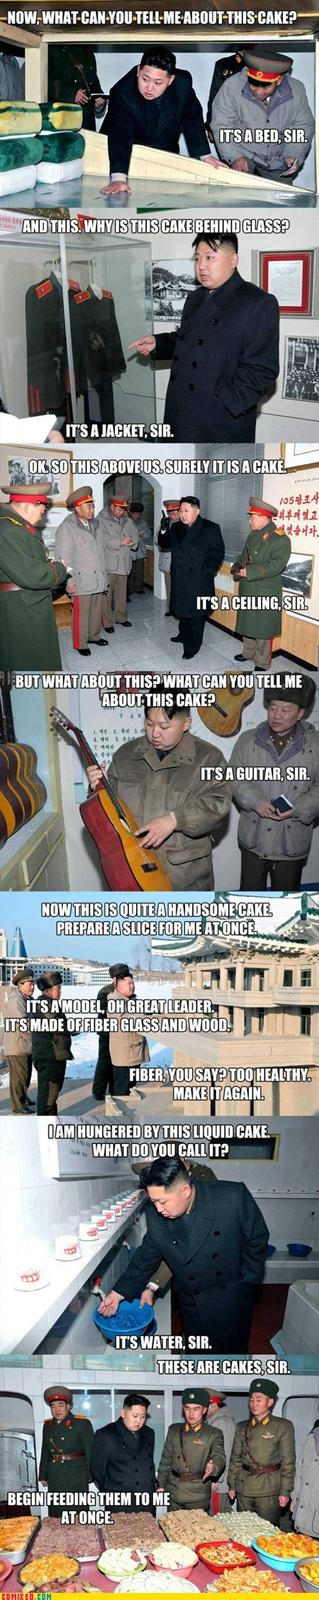 Cake is a primary resource in North Korea